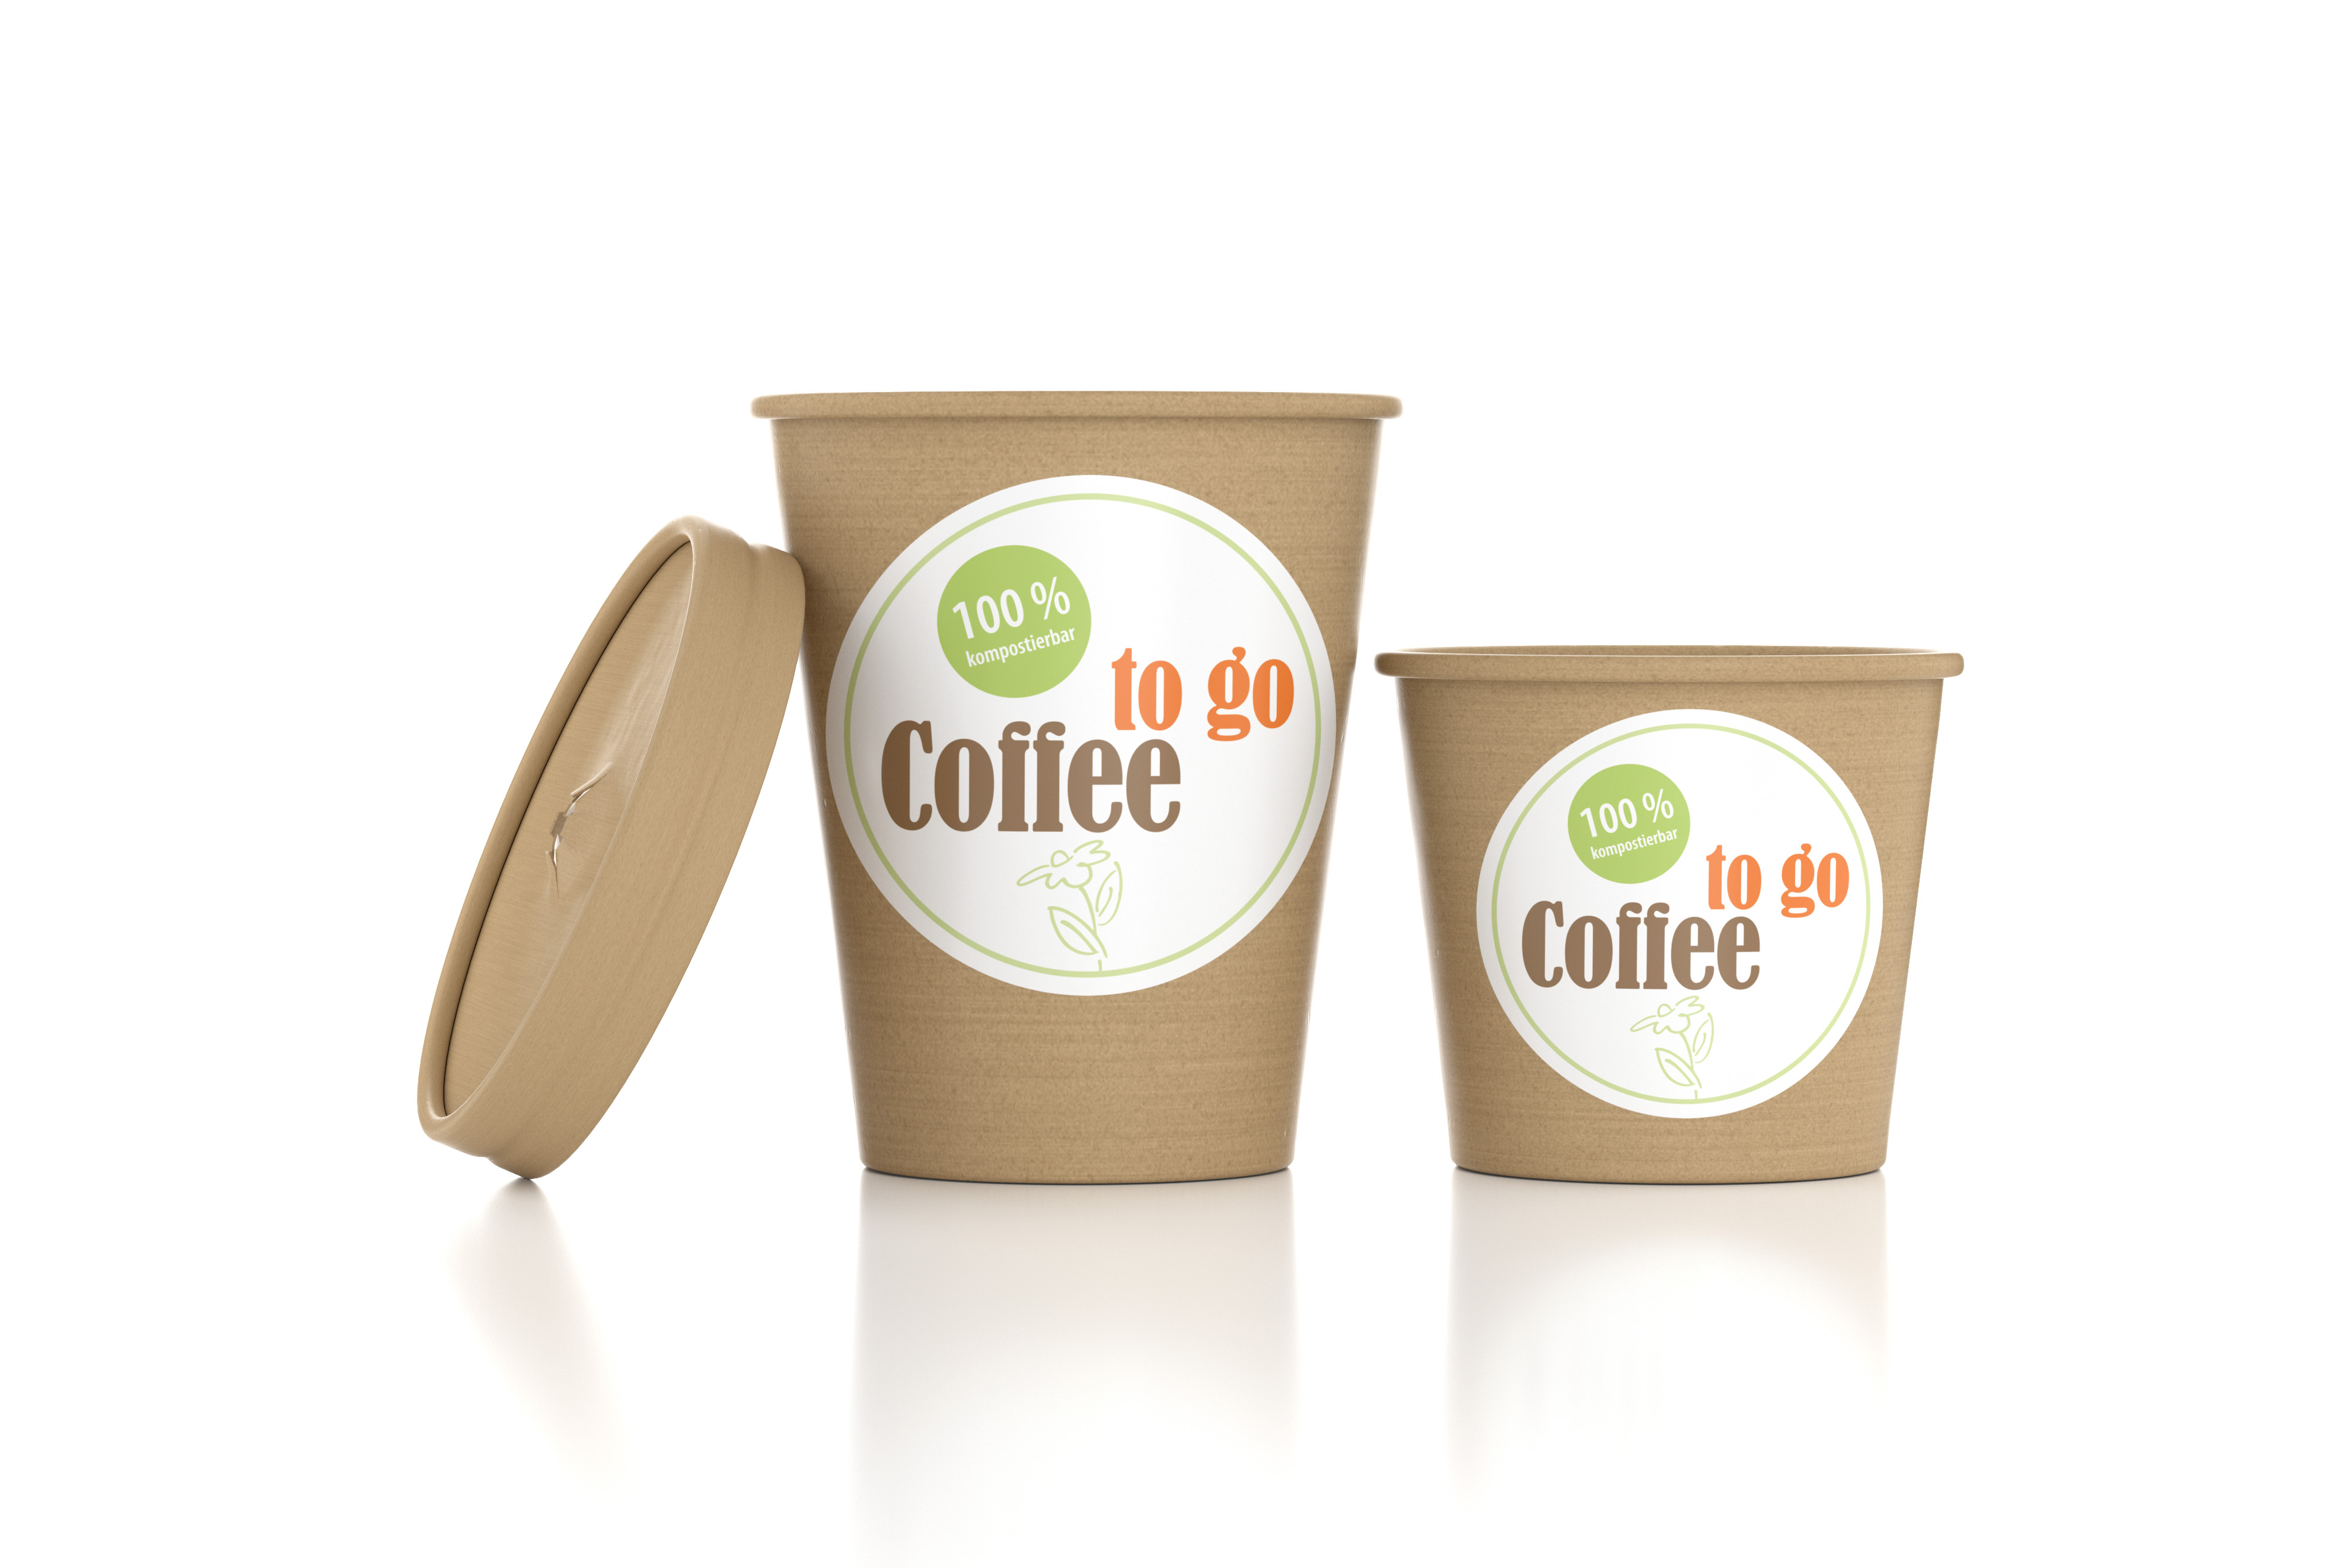 Etiket Schiller's eco-conscious labels enable fully compostable